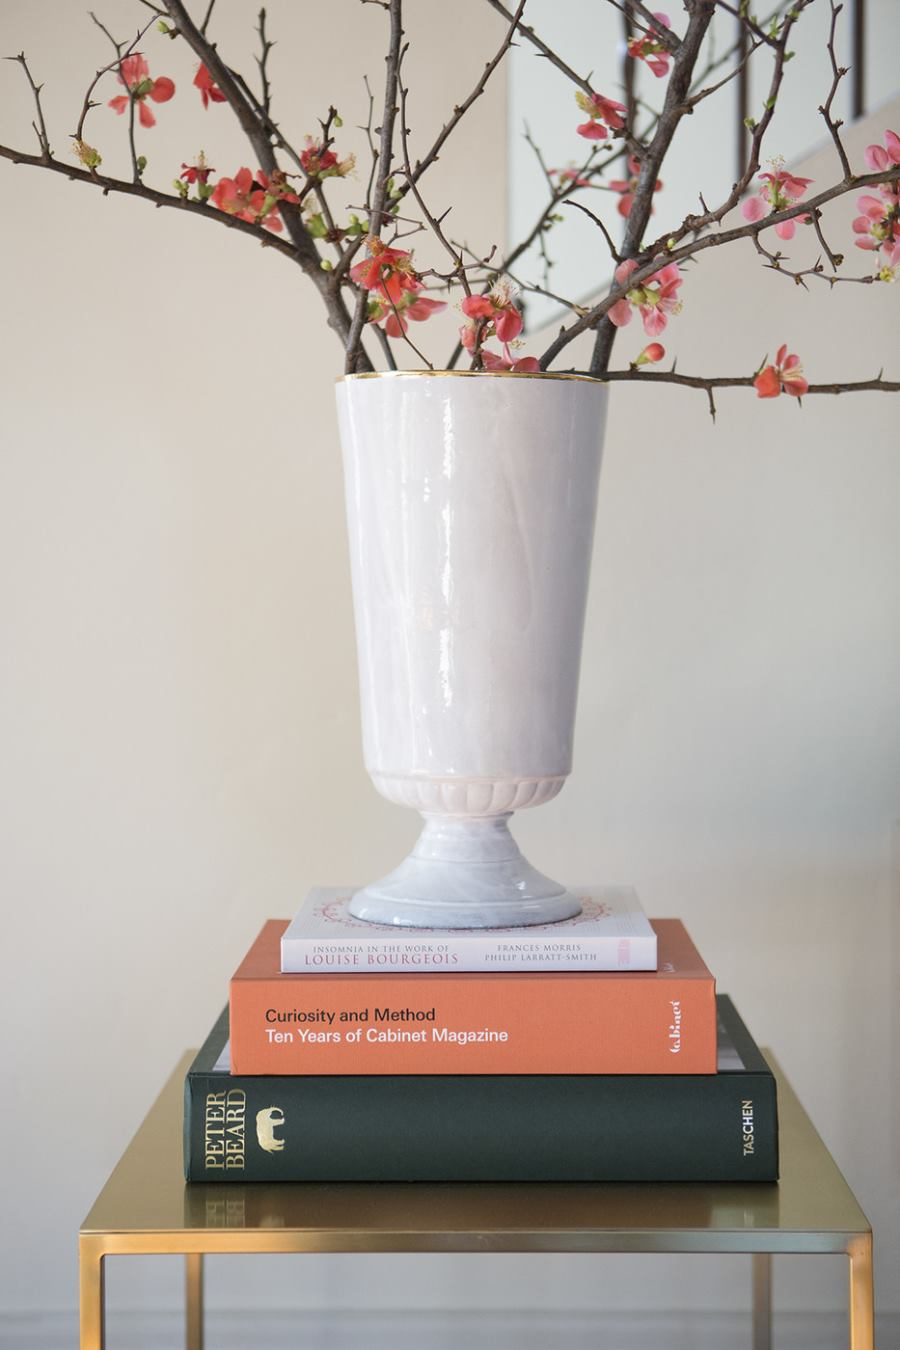 White urn filled with cherry blossom branches